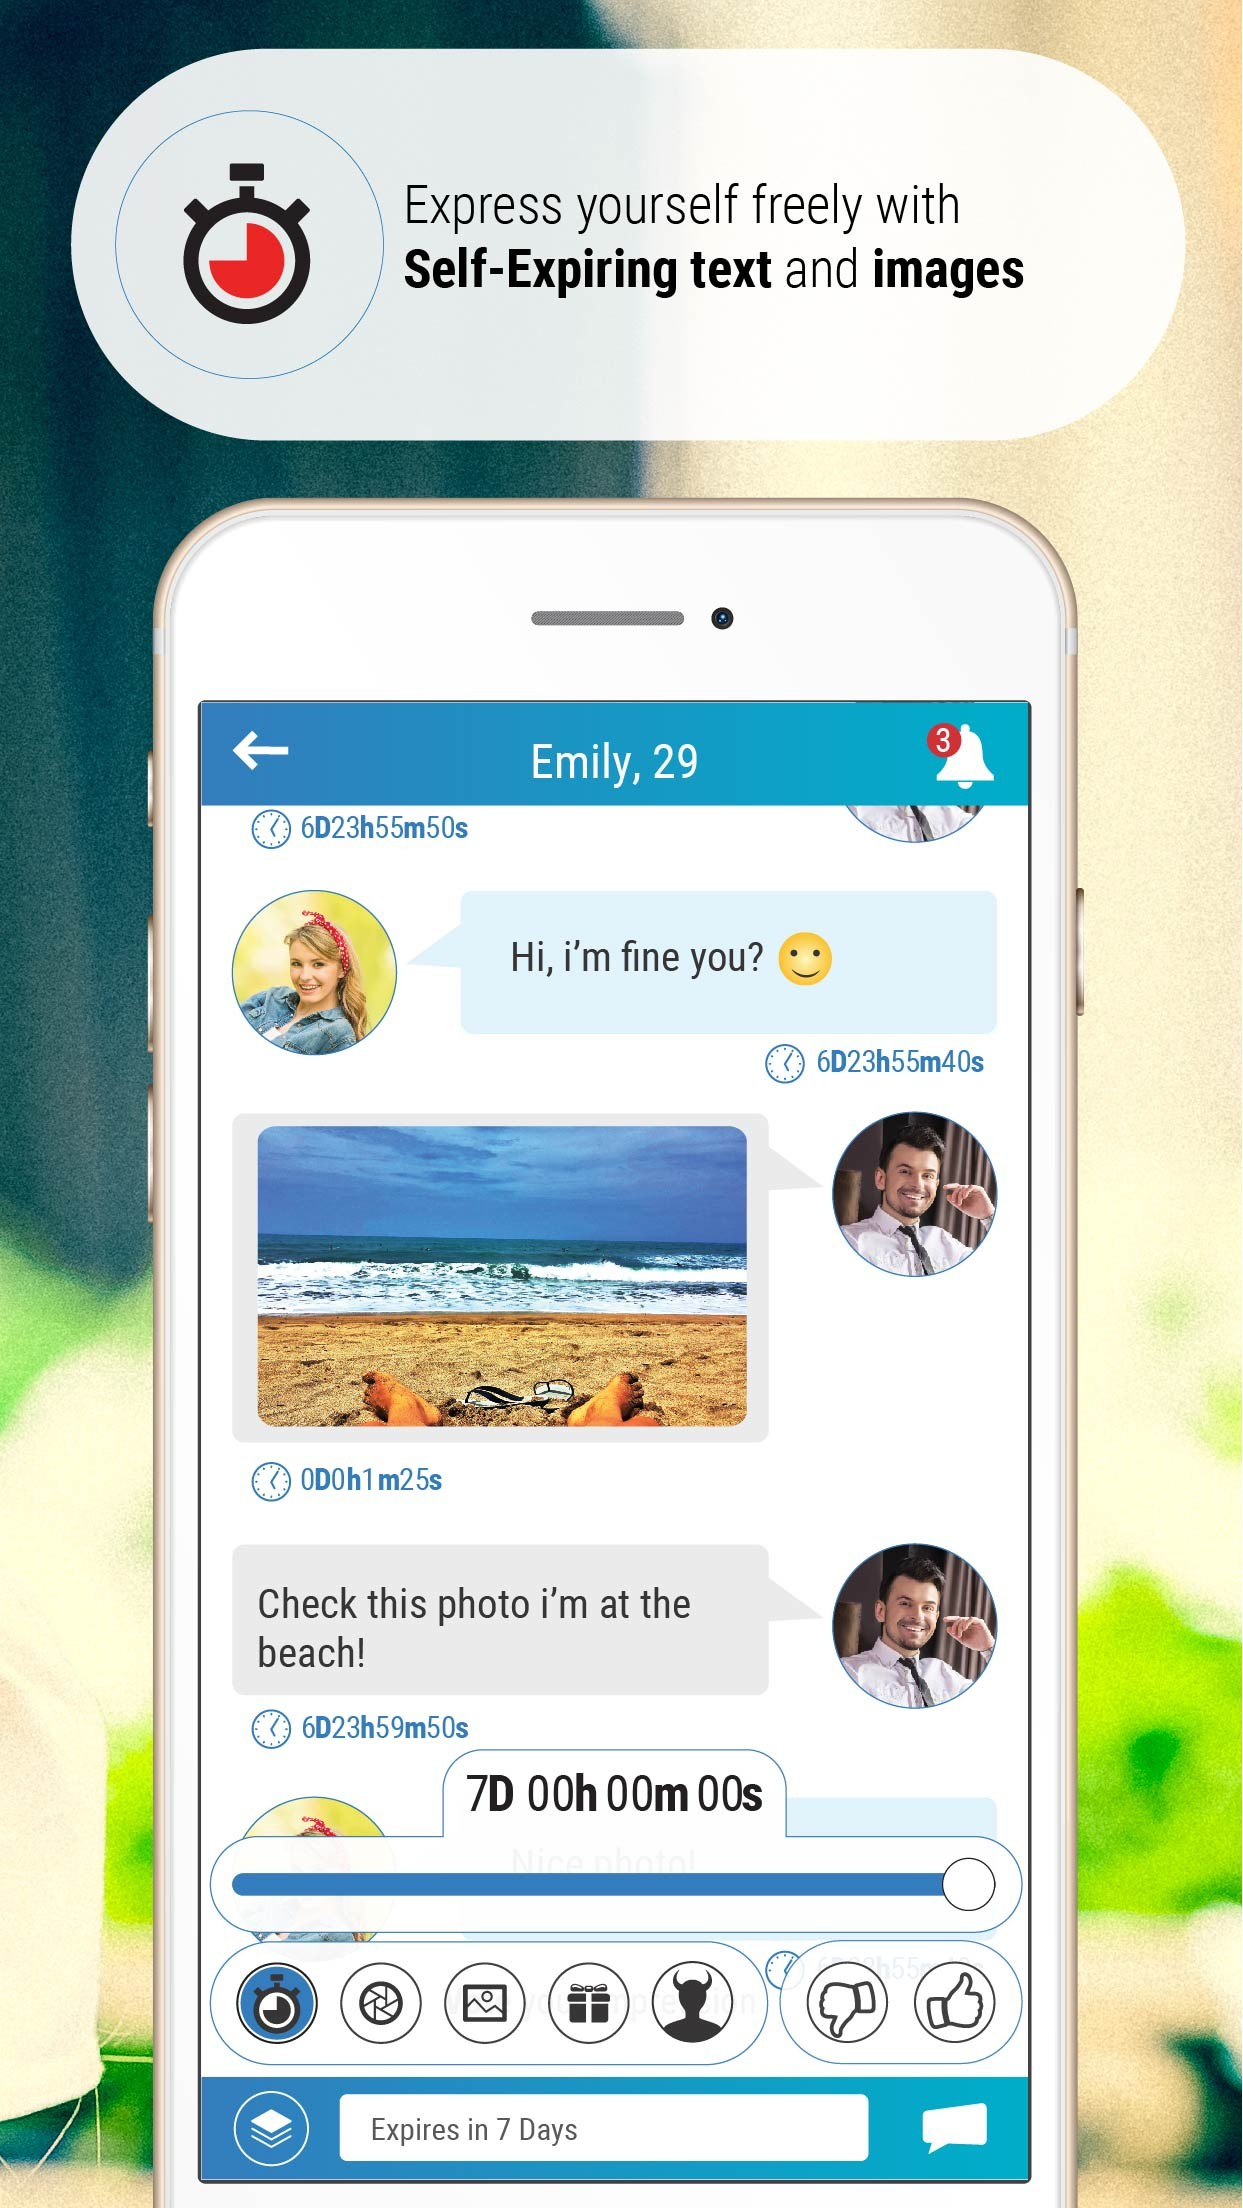 online dating apps mumbai Zoosk is the online dating site and dating app where you can browse photos of local singles, match with daters, and chat you never know who you might find.